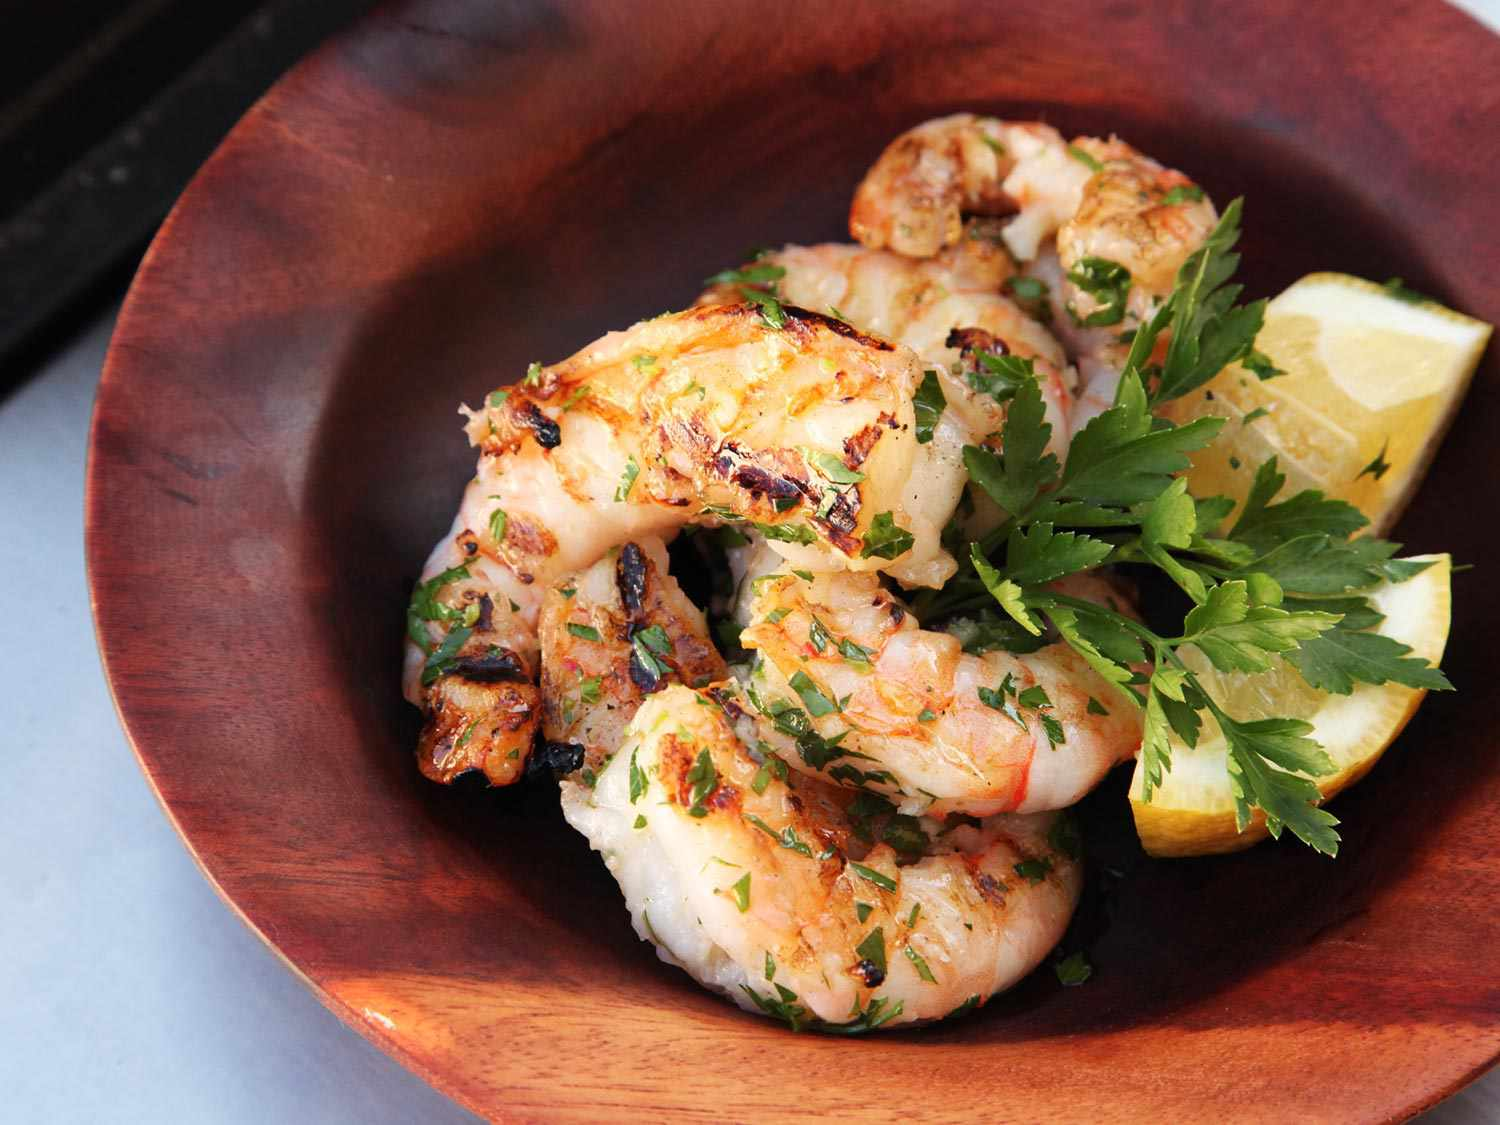 Grilled shrimp with garlic and lemon, sprinkled with herbs, in a wooden dish